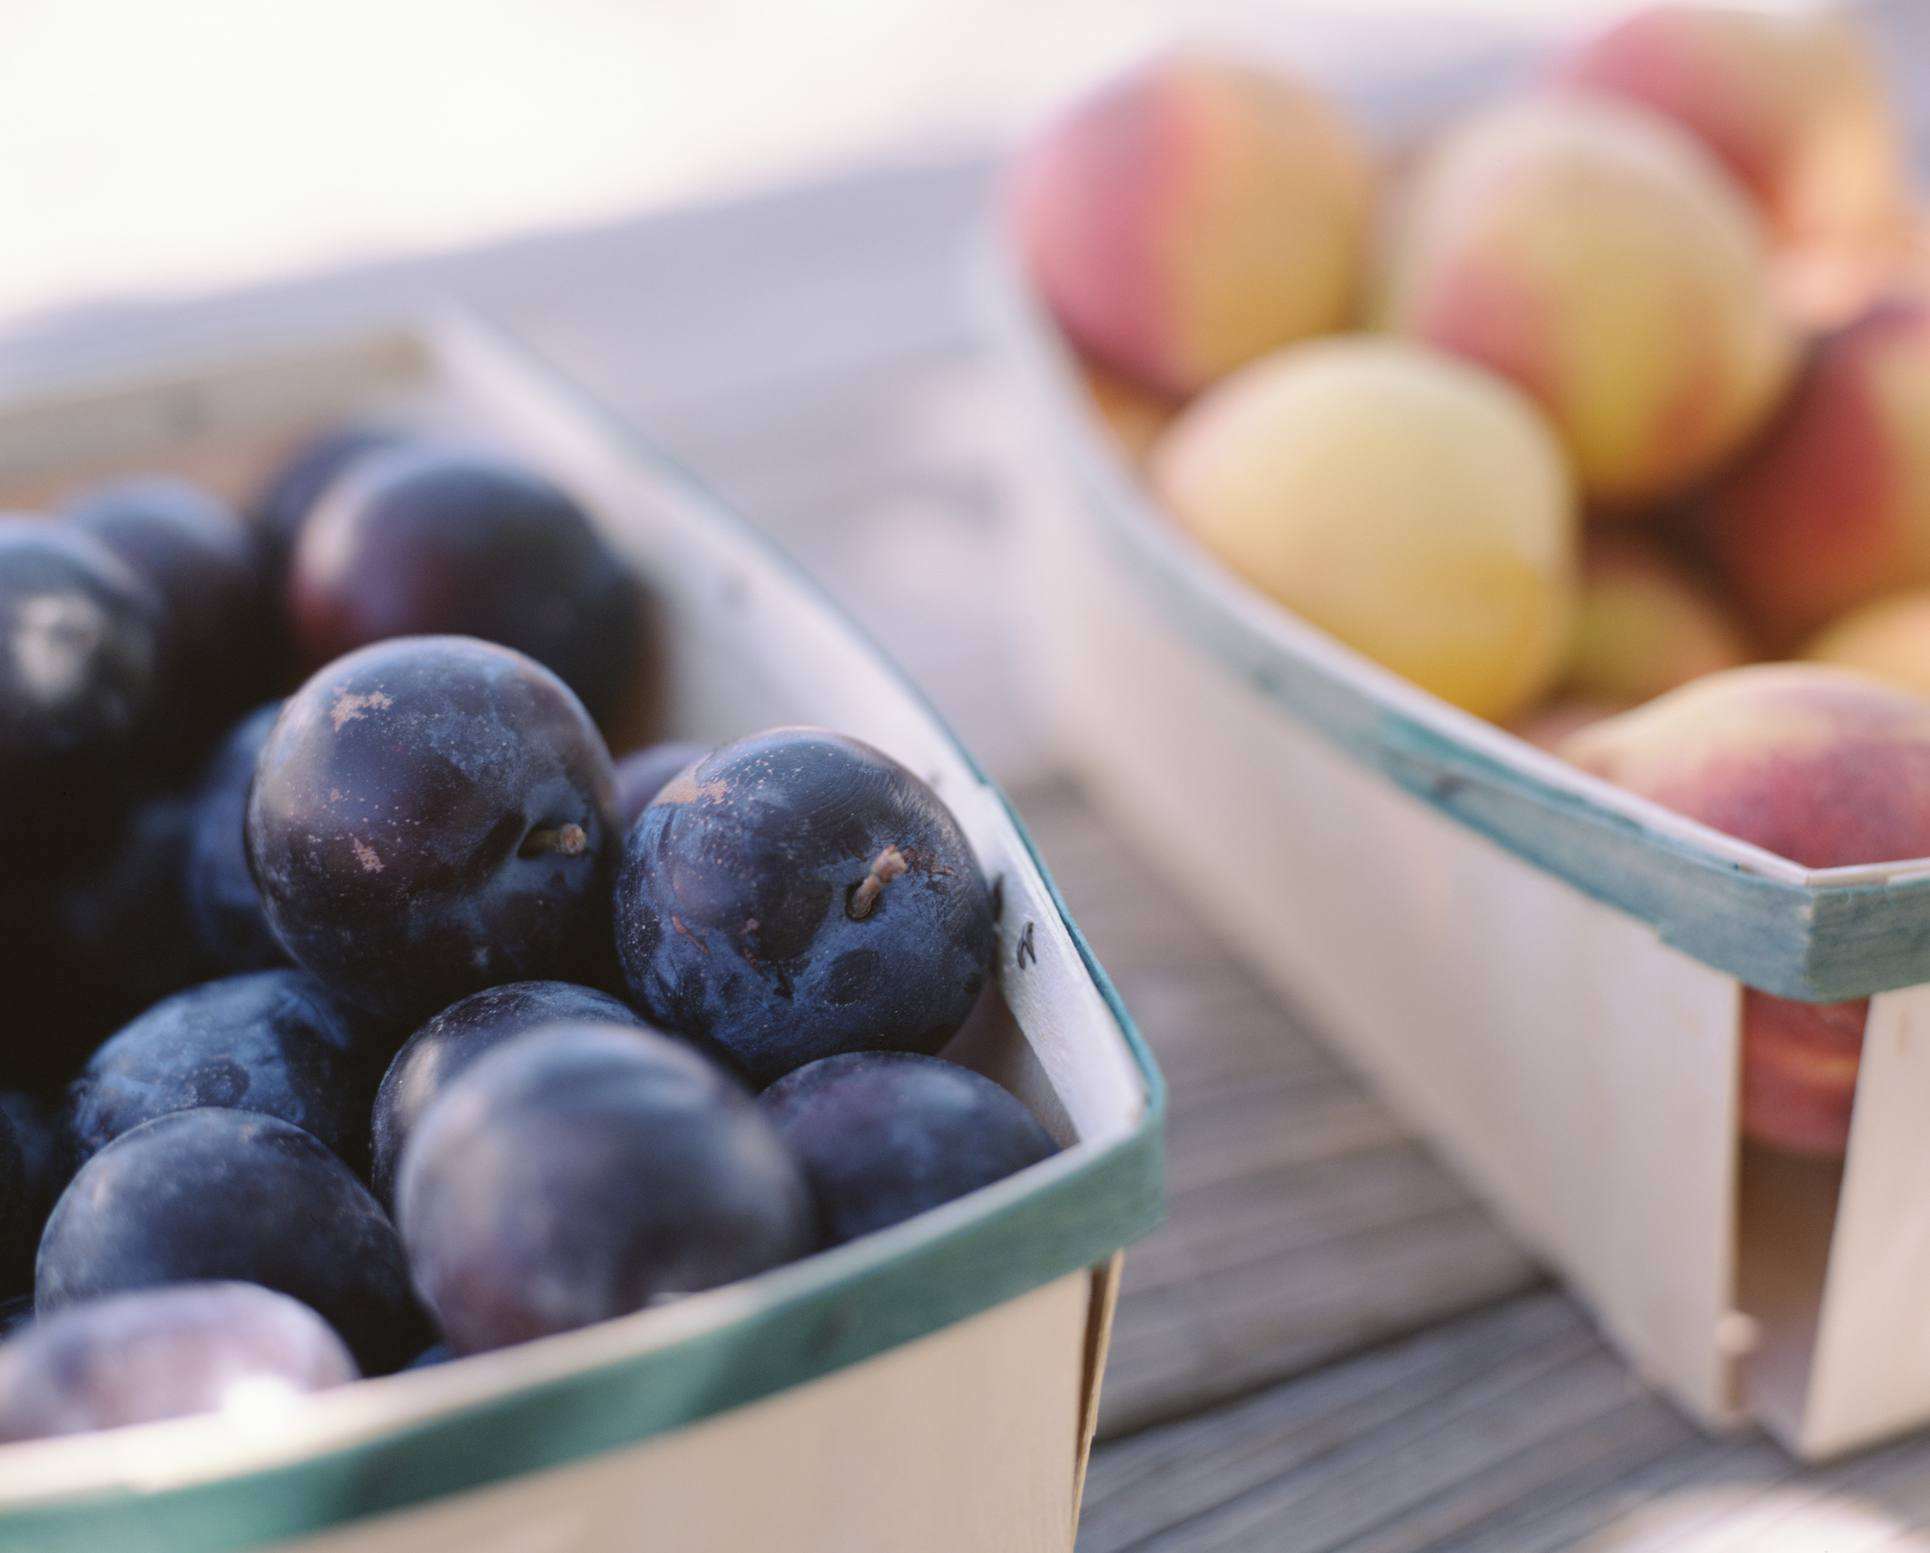 Plums and Peaches at Market